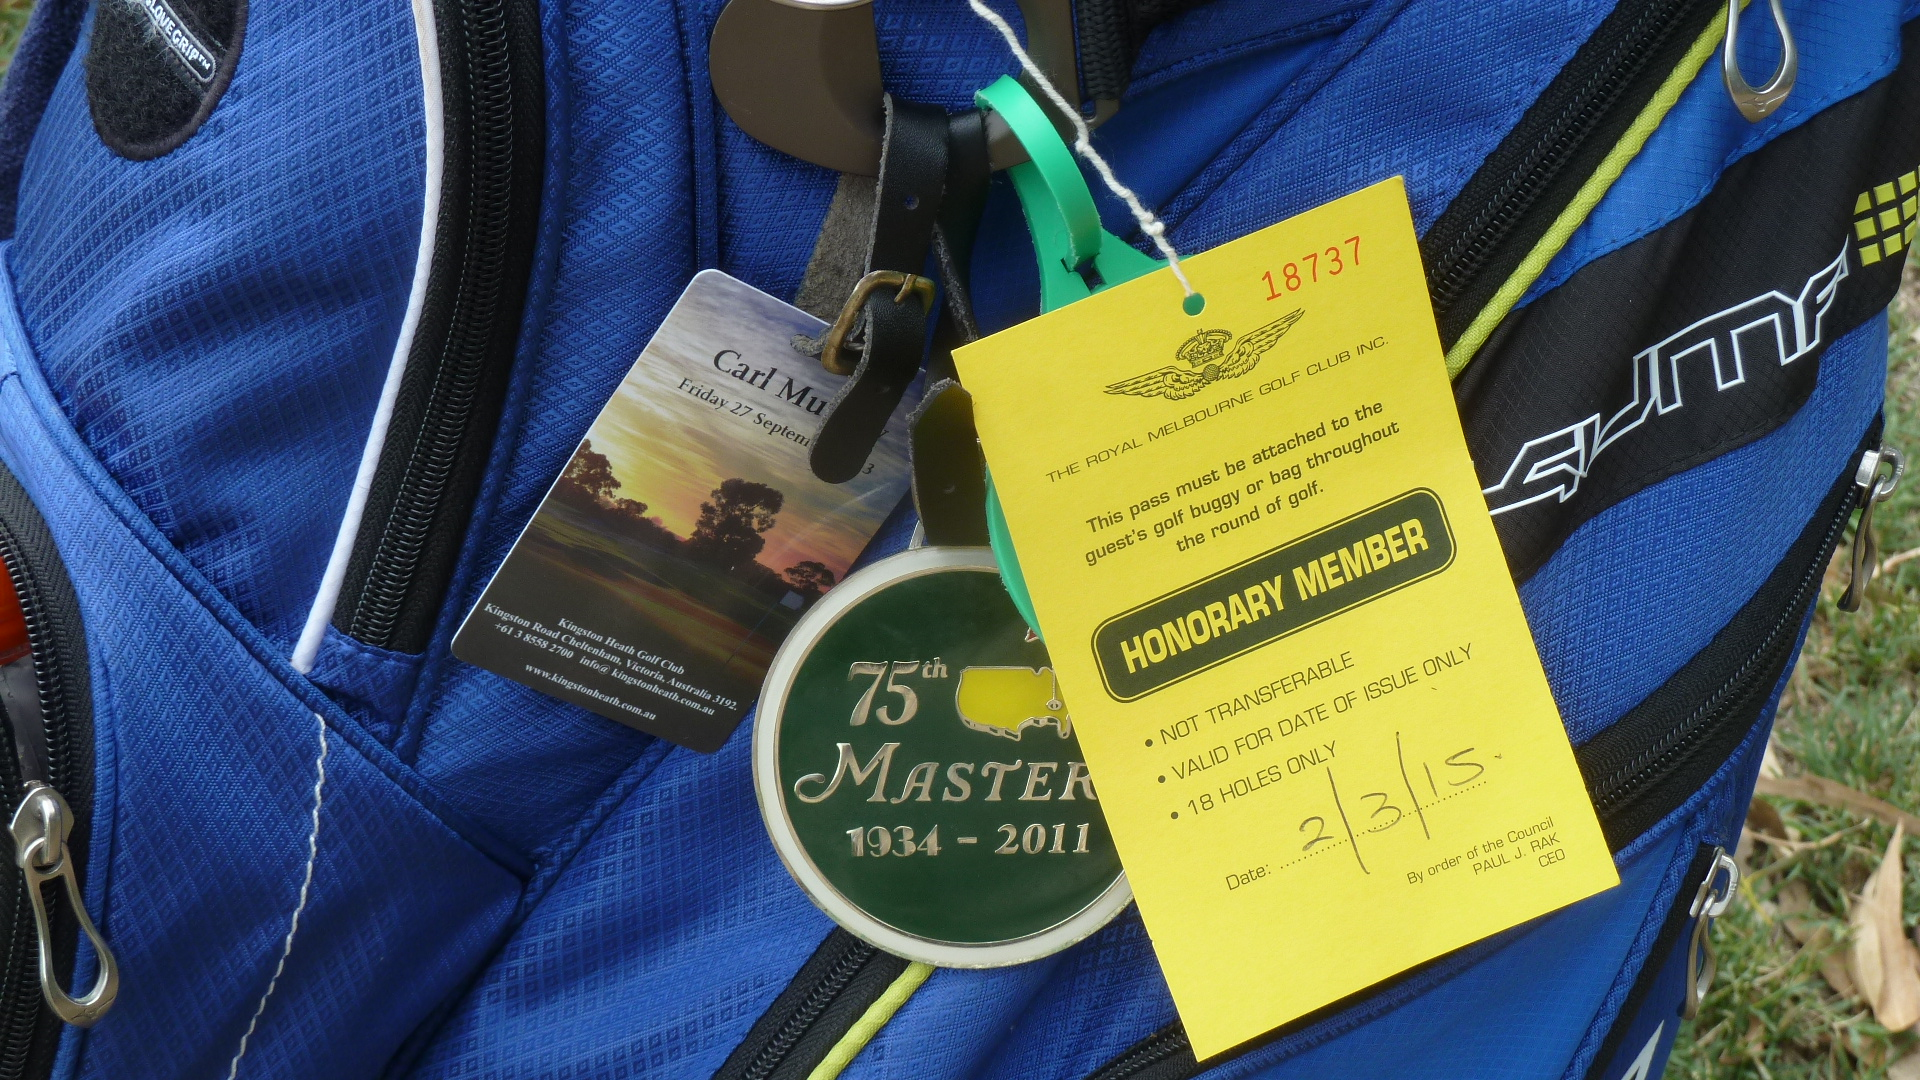 Visitor tag at Royal Melbourne Golf Club